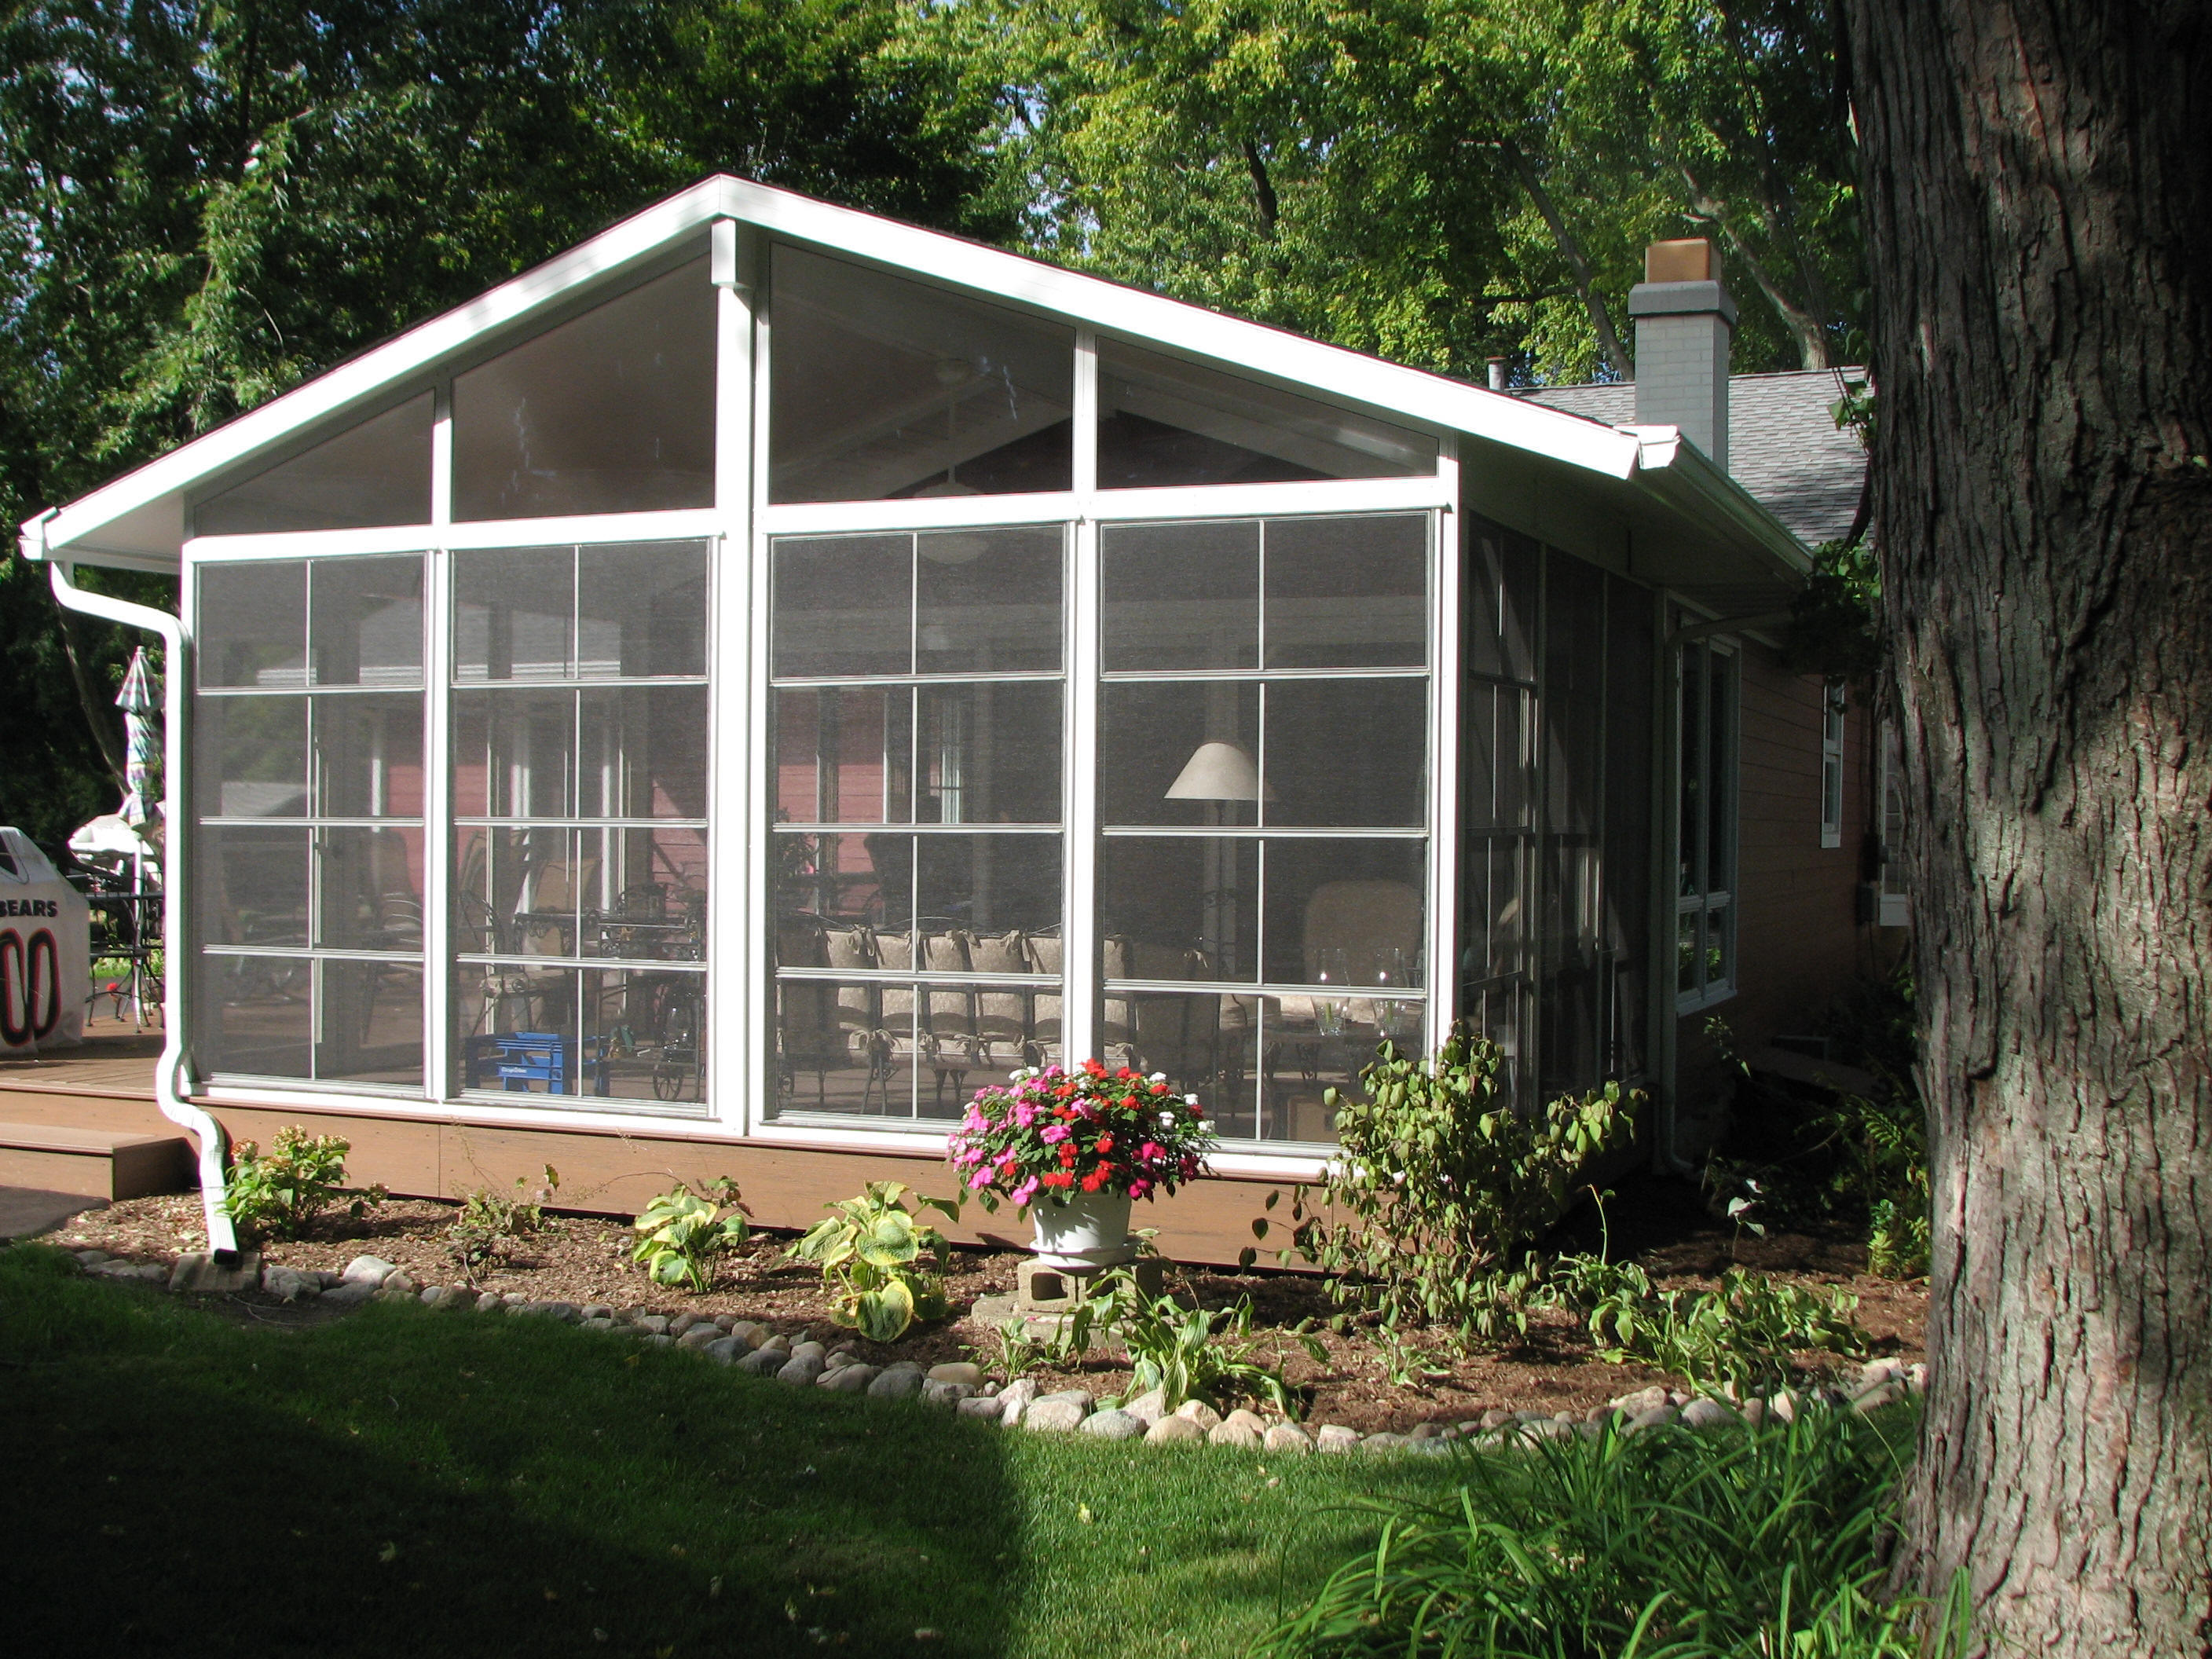 4 Track Stackable Vinyl Windows with trapezoid transoms